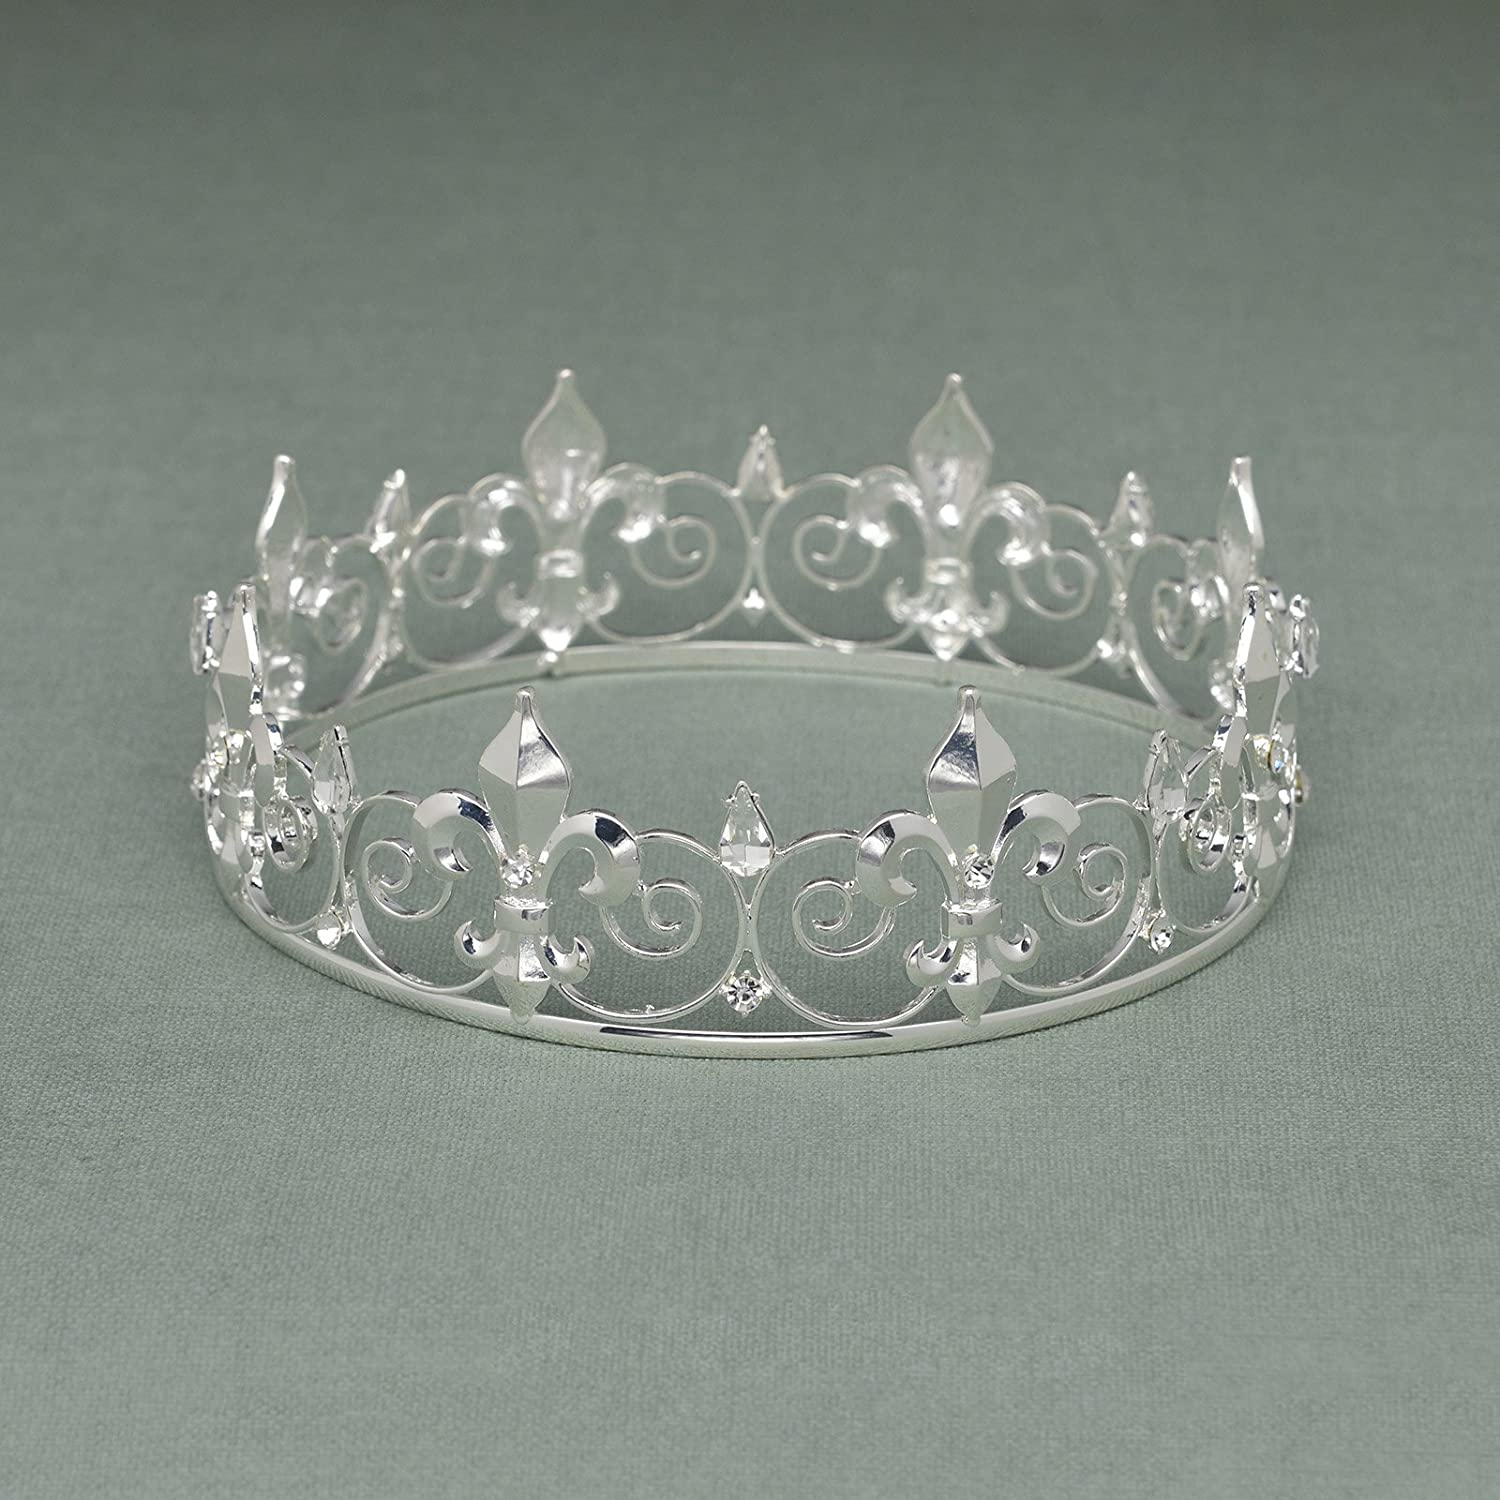 Metal Crowns and Tiaras for Men Prom King Party Hats Costume Accessories Gold SWEETV Royal Full King Crown